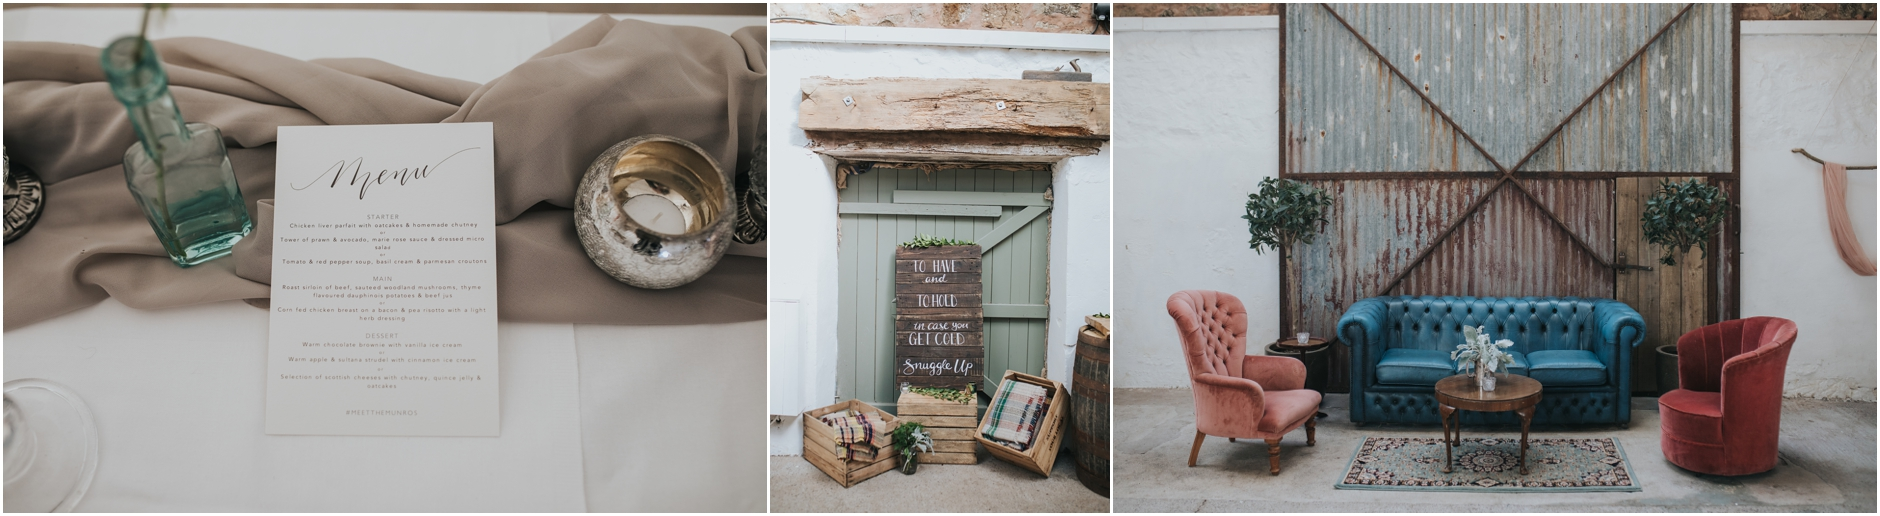 cow shed wedding crail venue details and set up by little white cow